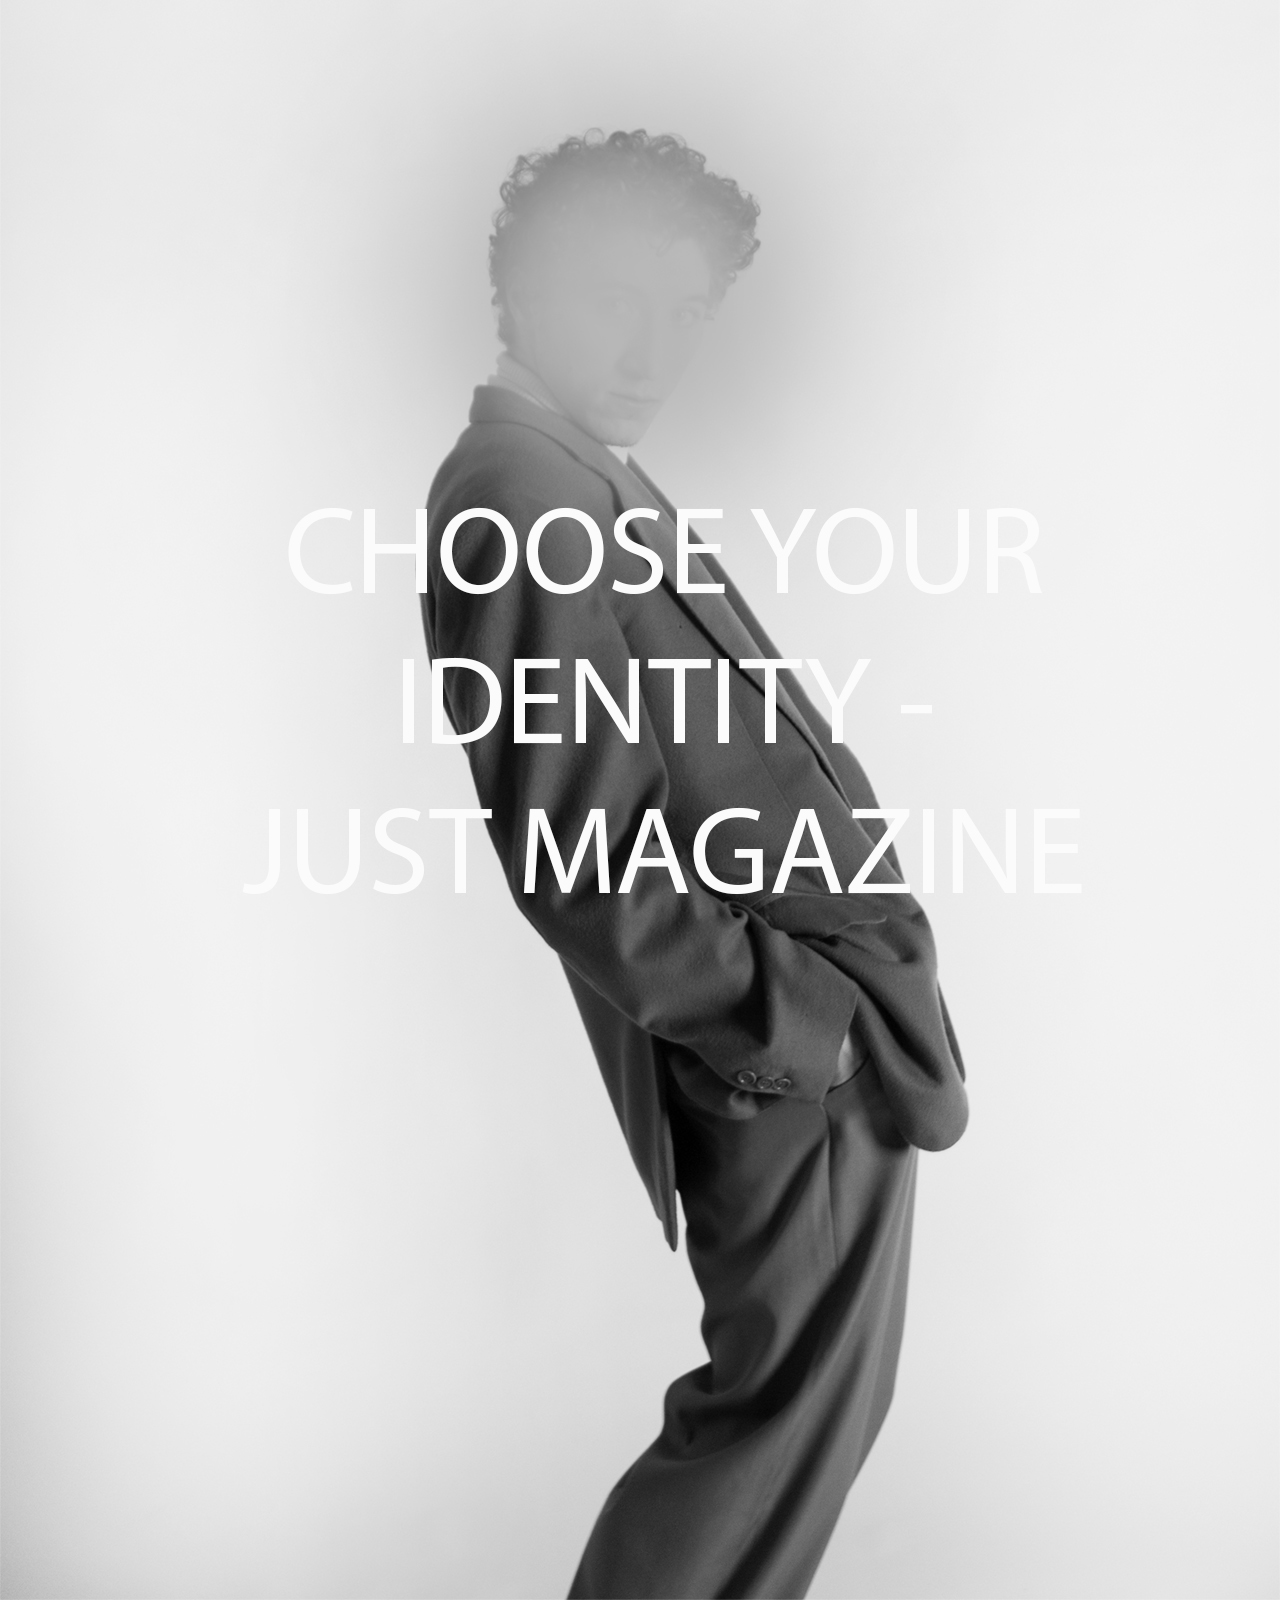 Choose your identity - Andrea Reina